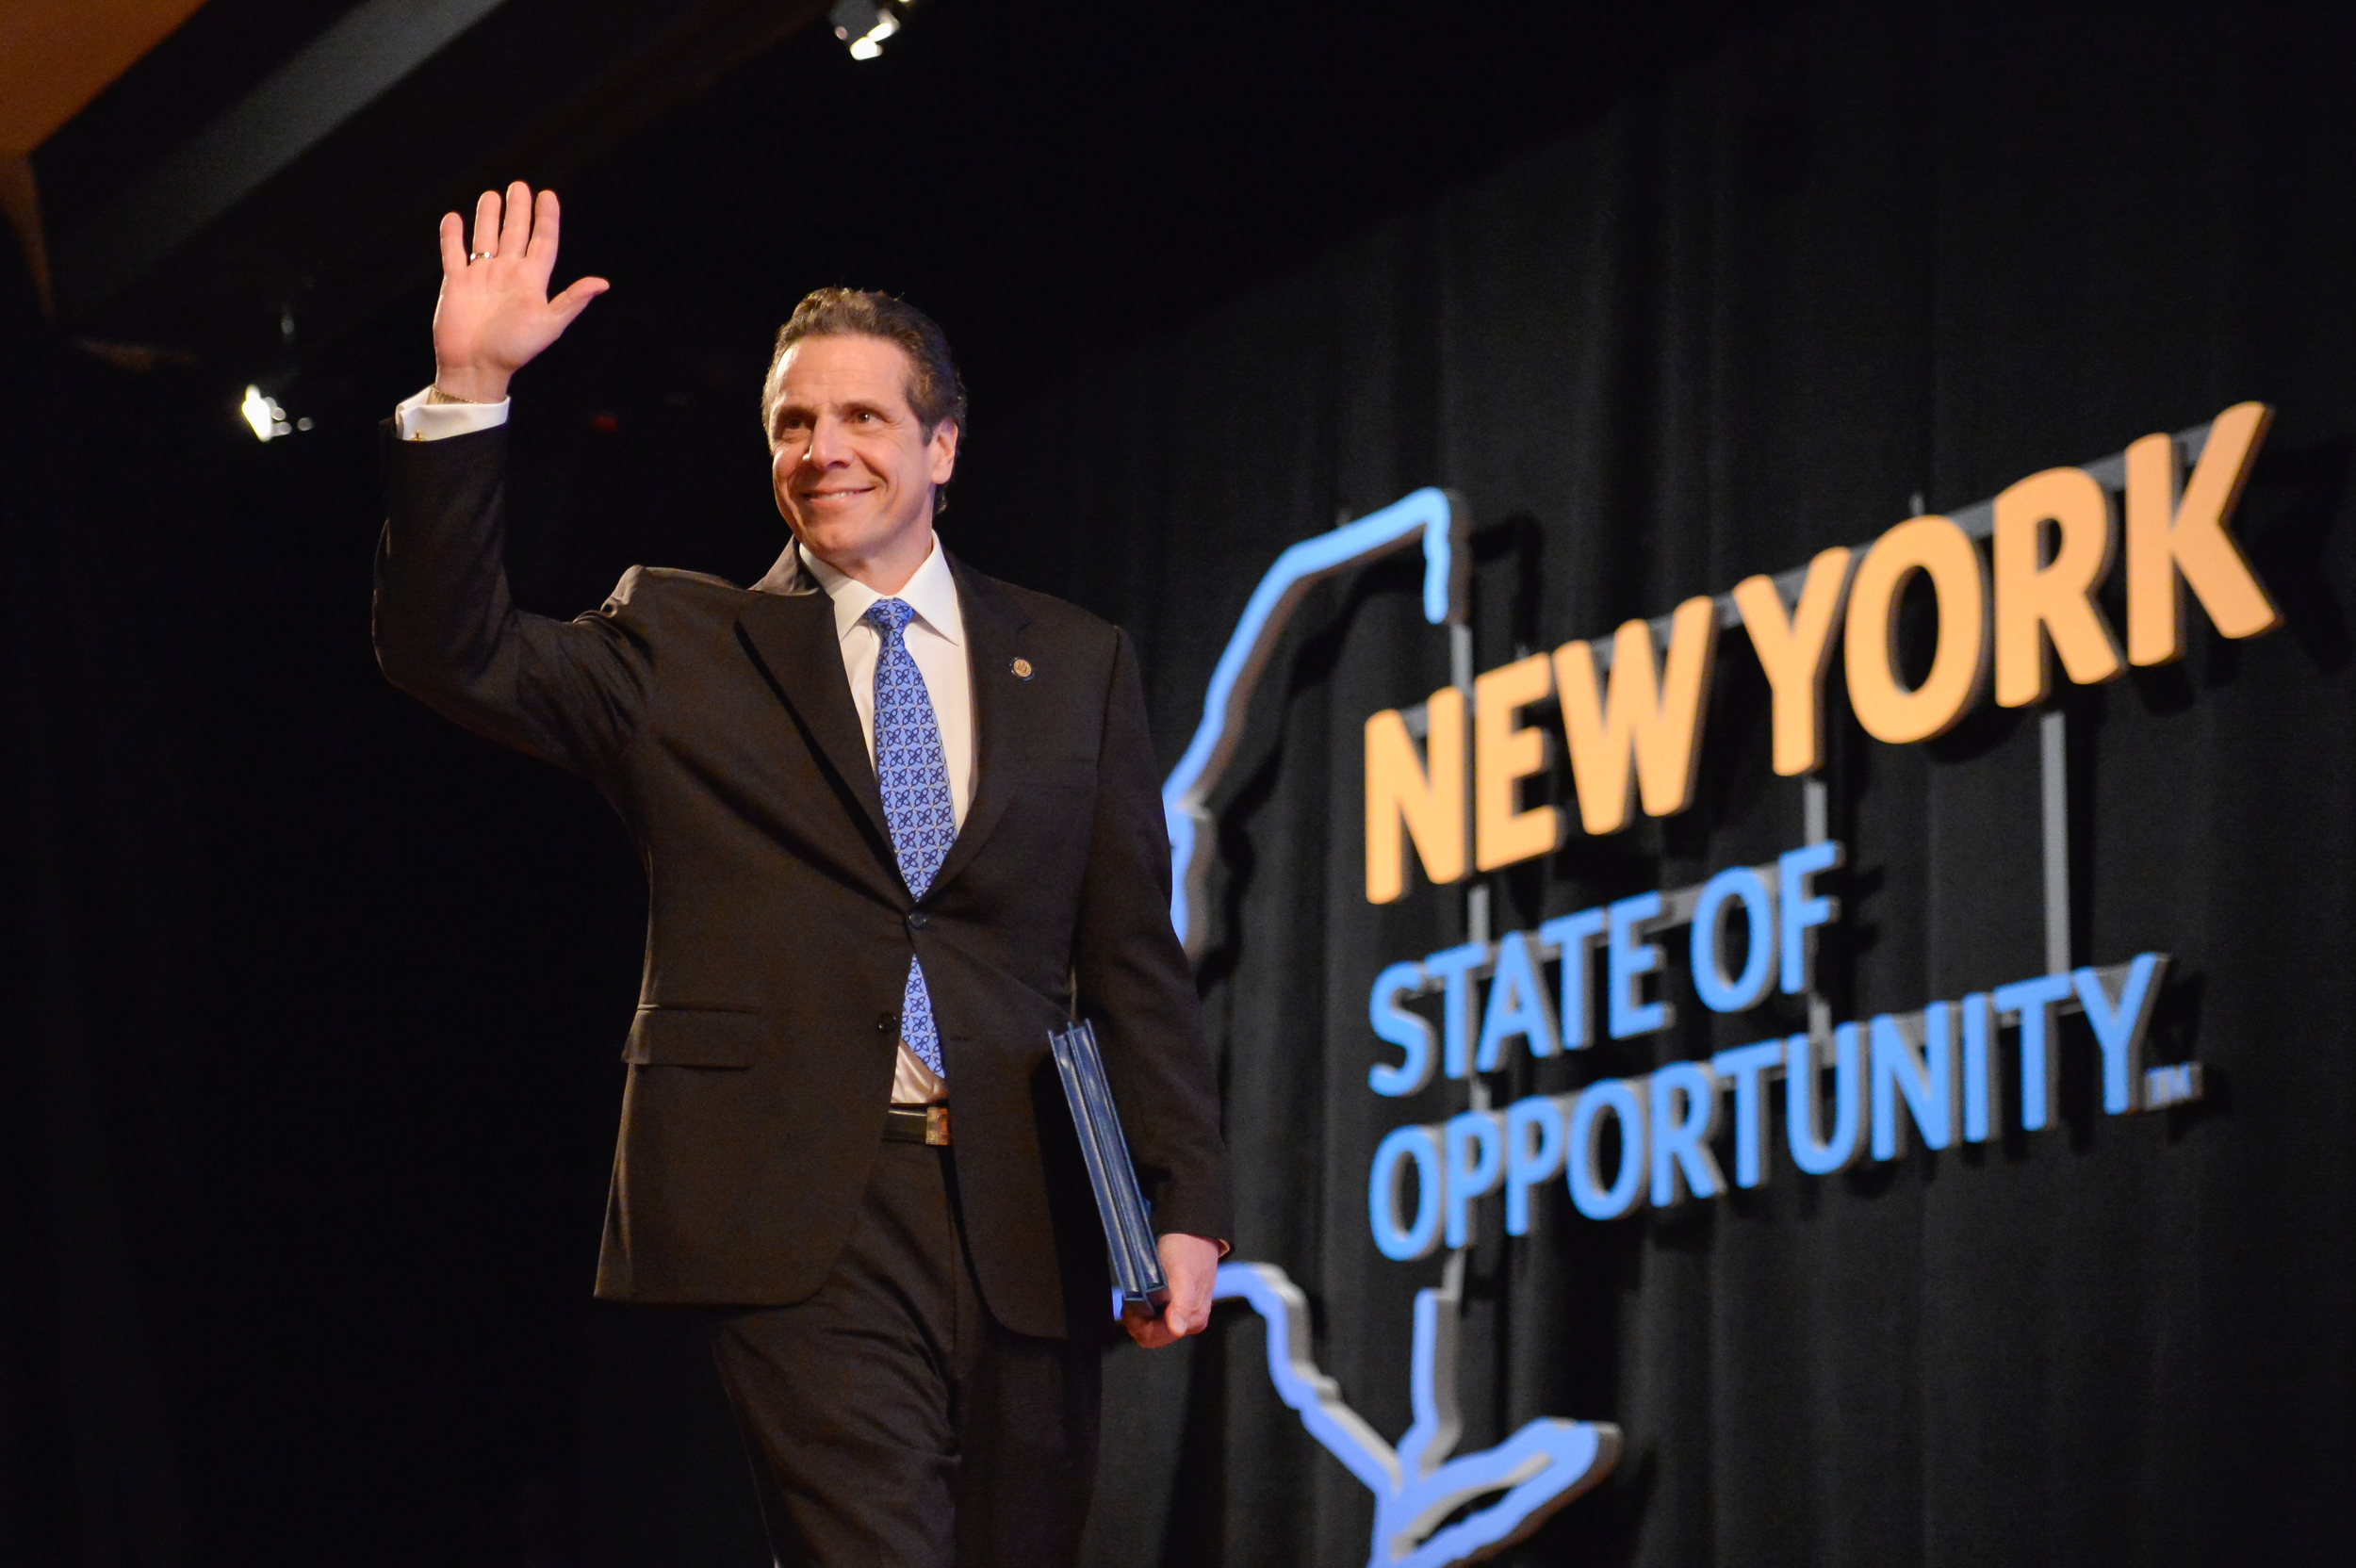 Governor Andrew Cuomo on Wednesday. Source : Official Photograph/New York Governor's Office/Flickr